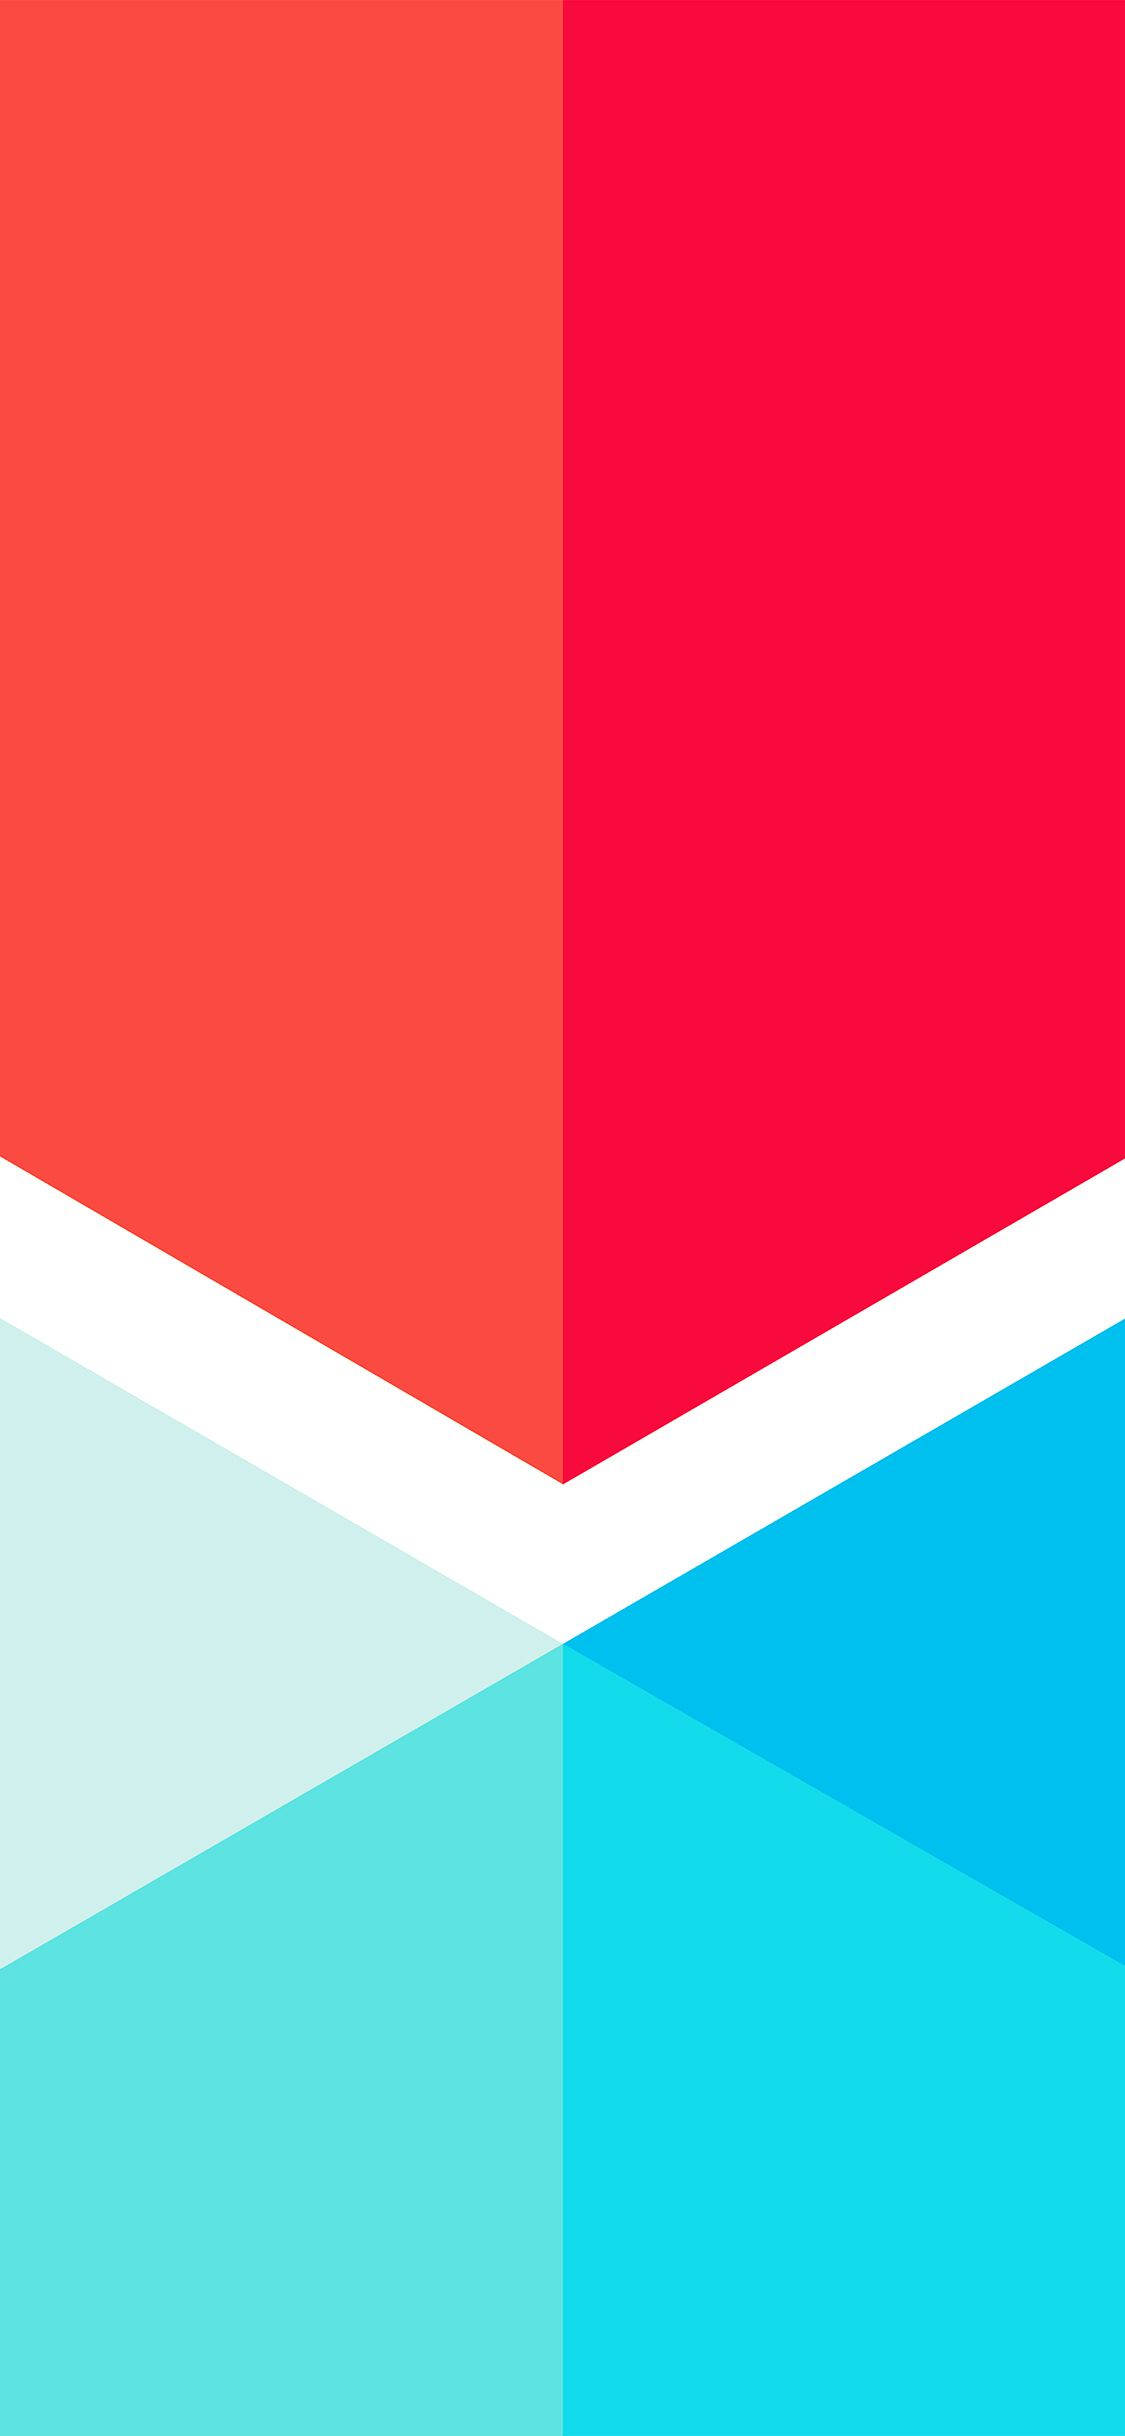 1125x2436 iPhoneXpapers.com | iPhone X wallpaper | vr42-polymail-red-blue-by ...